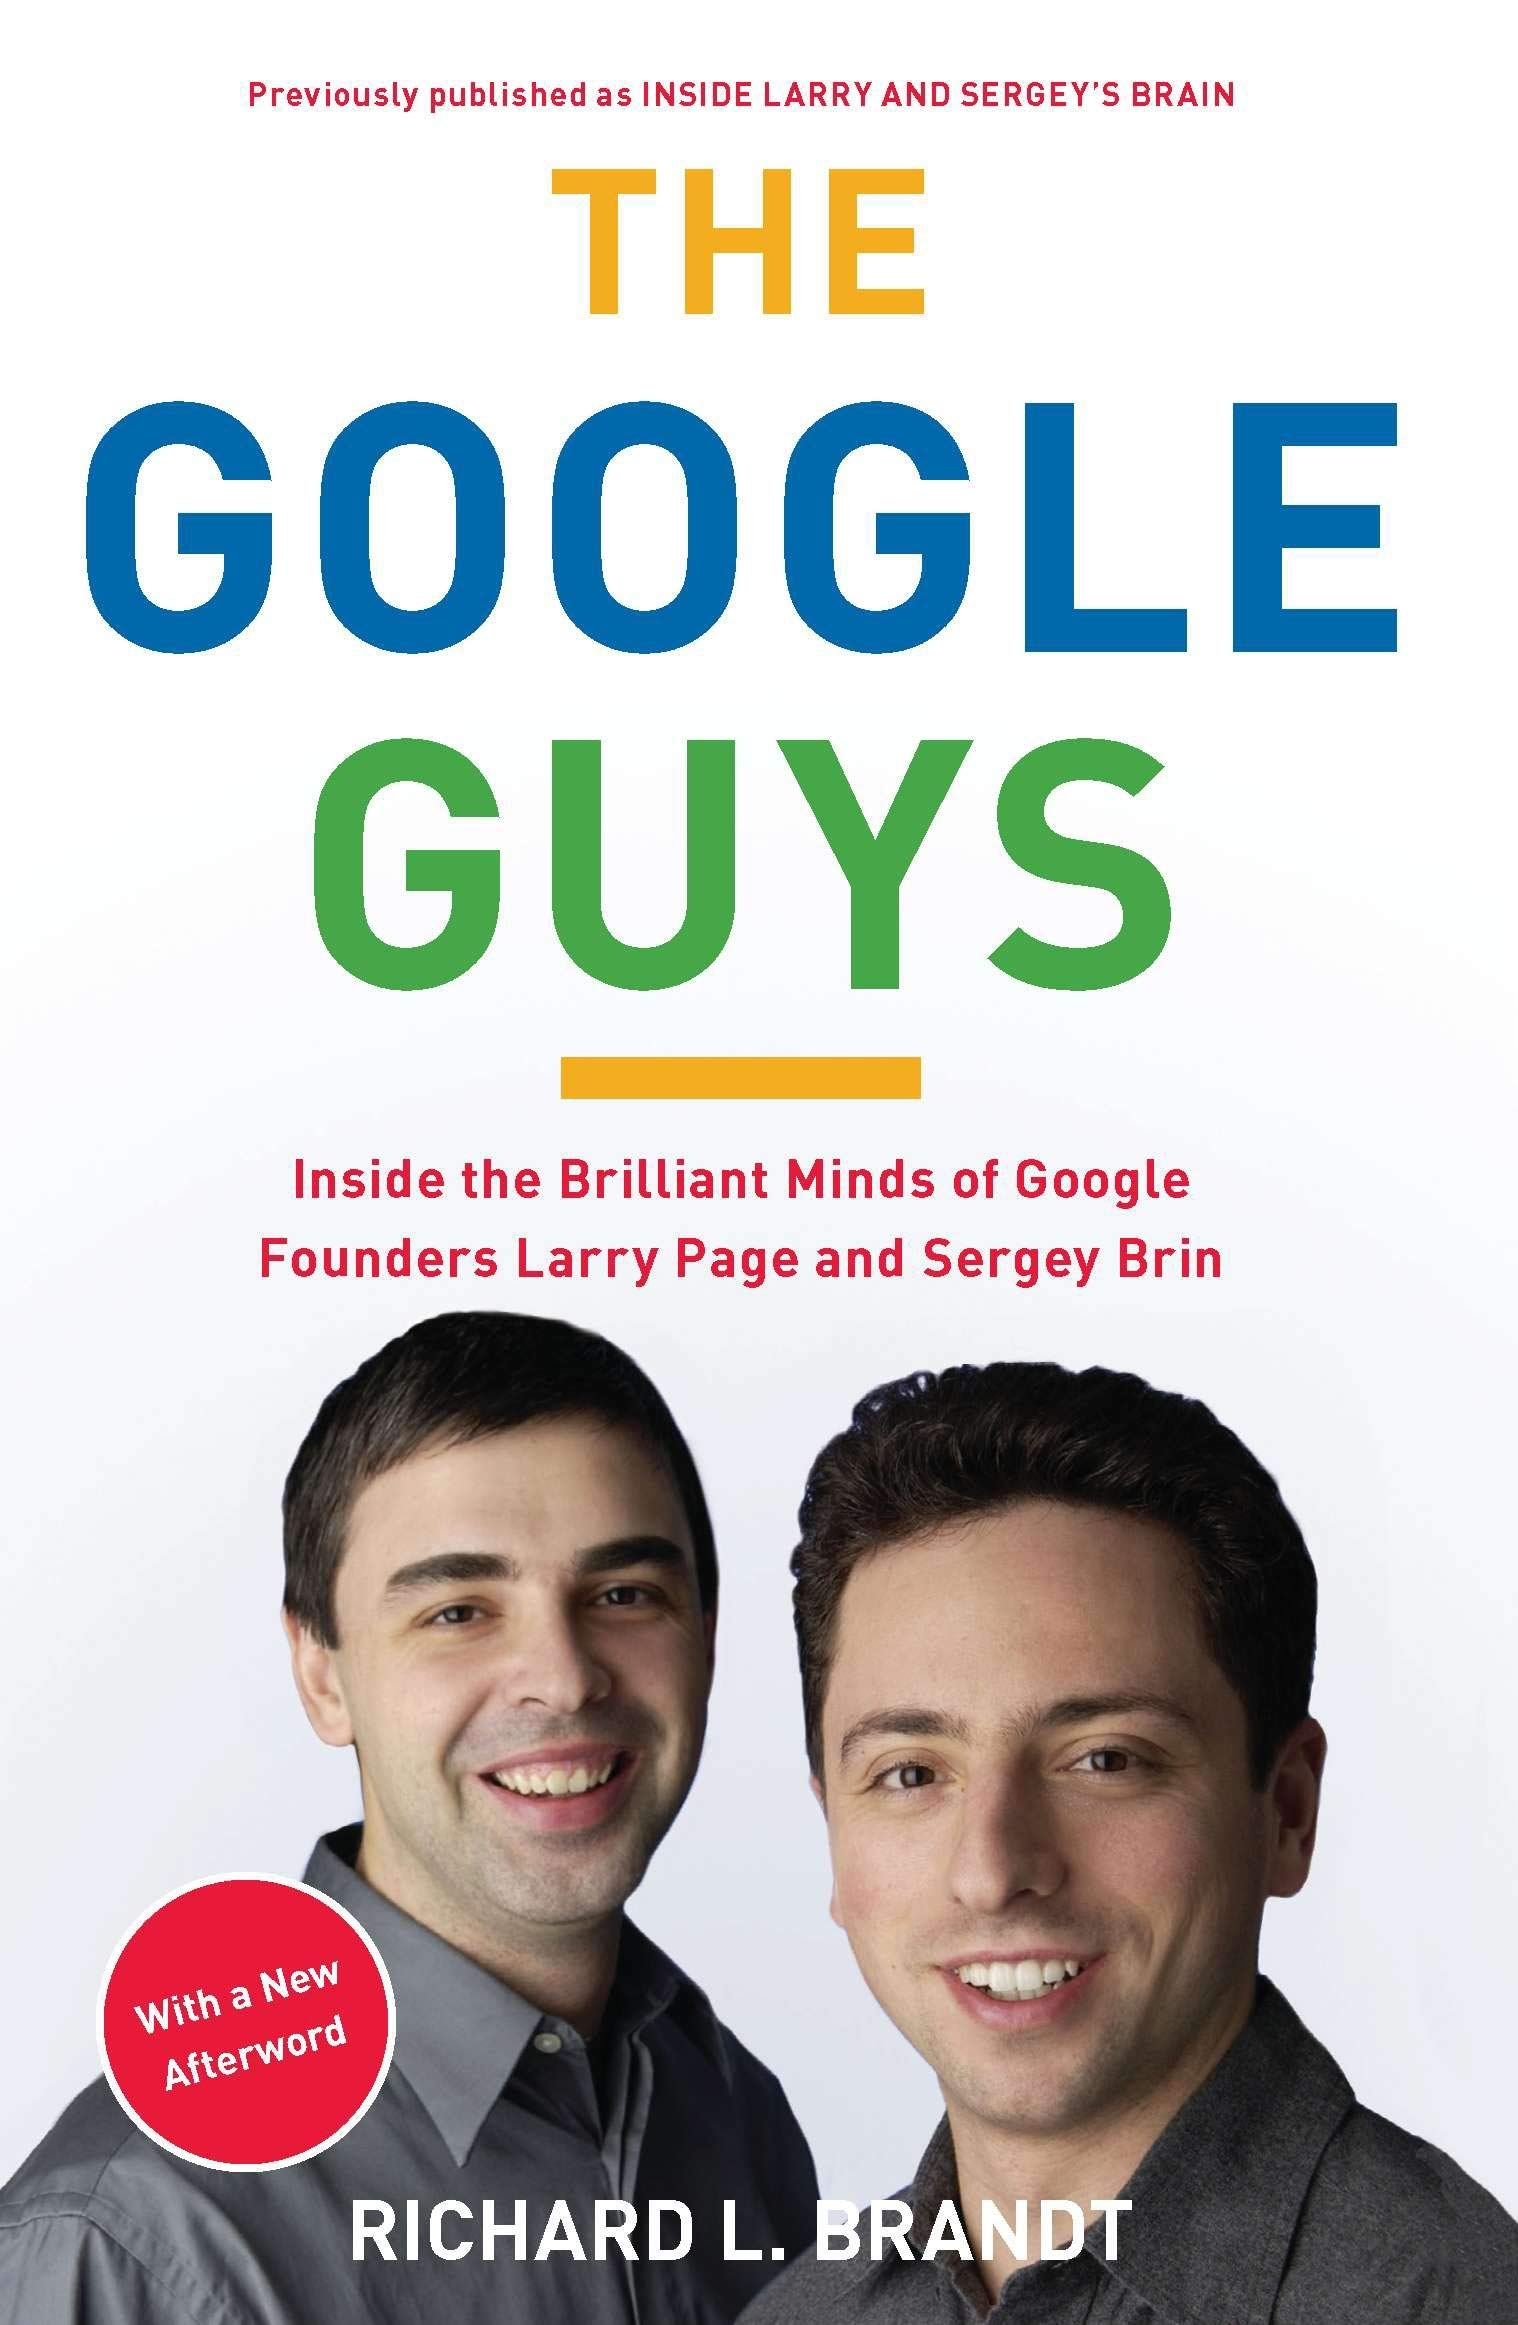 Buy The Google Guys: Inside the Brilliant Minds of Google Founders Larry Page and Sergey Brin Book Online at Low Prices in India | The Google Guys: Inside the Brilliant Minds of